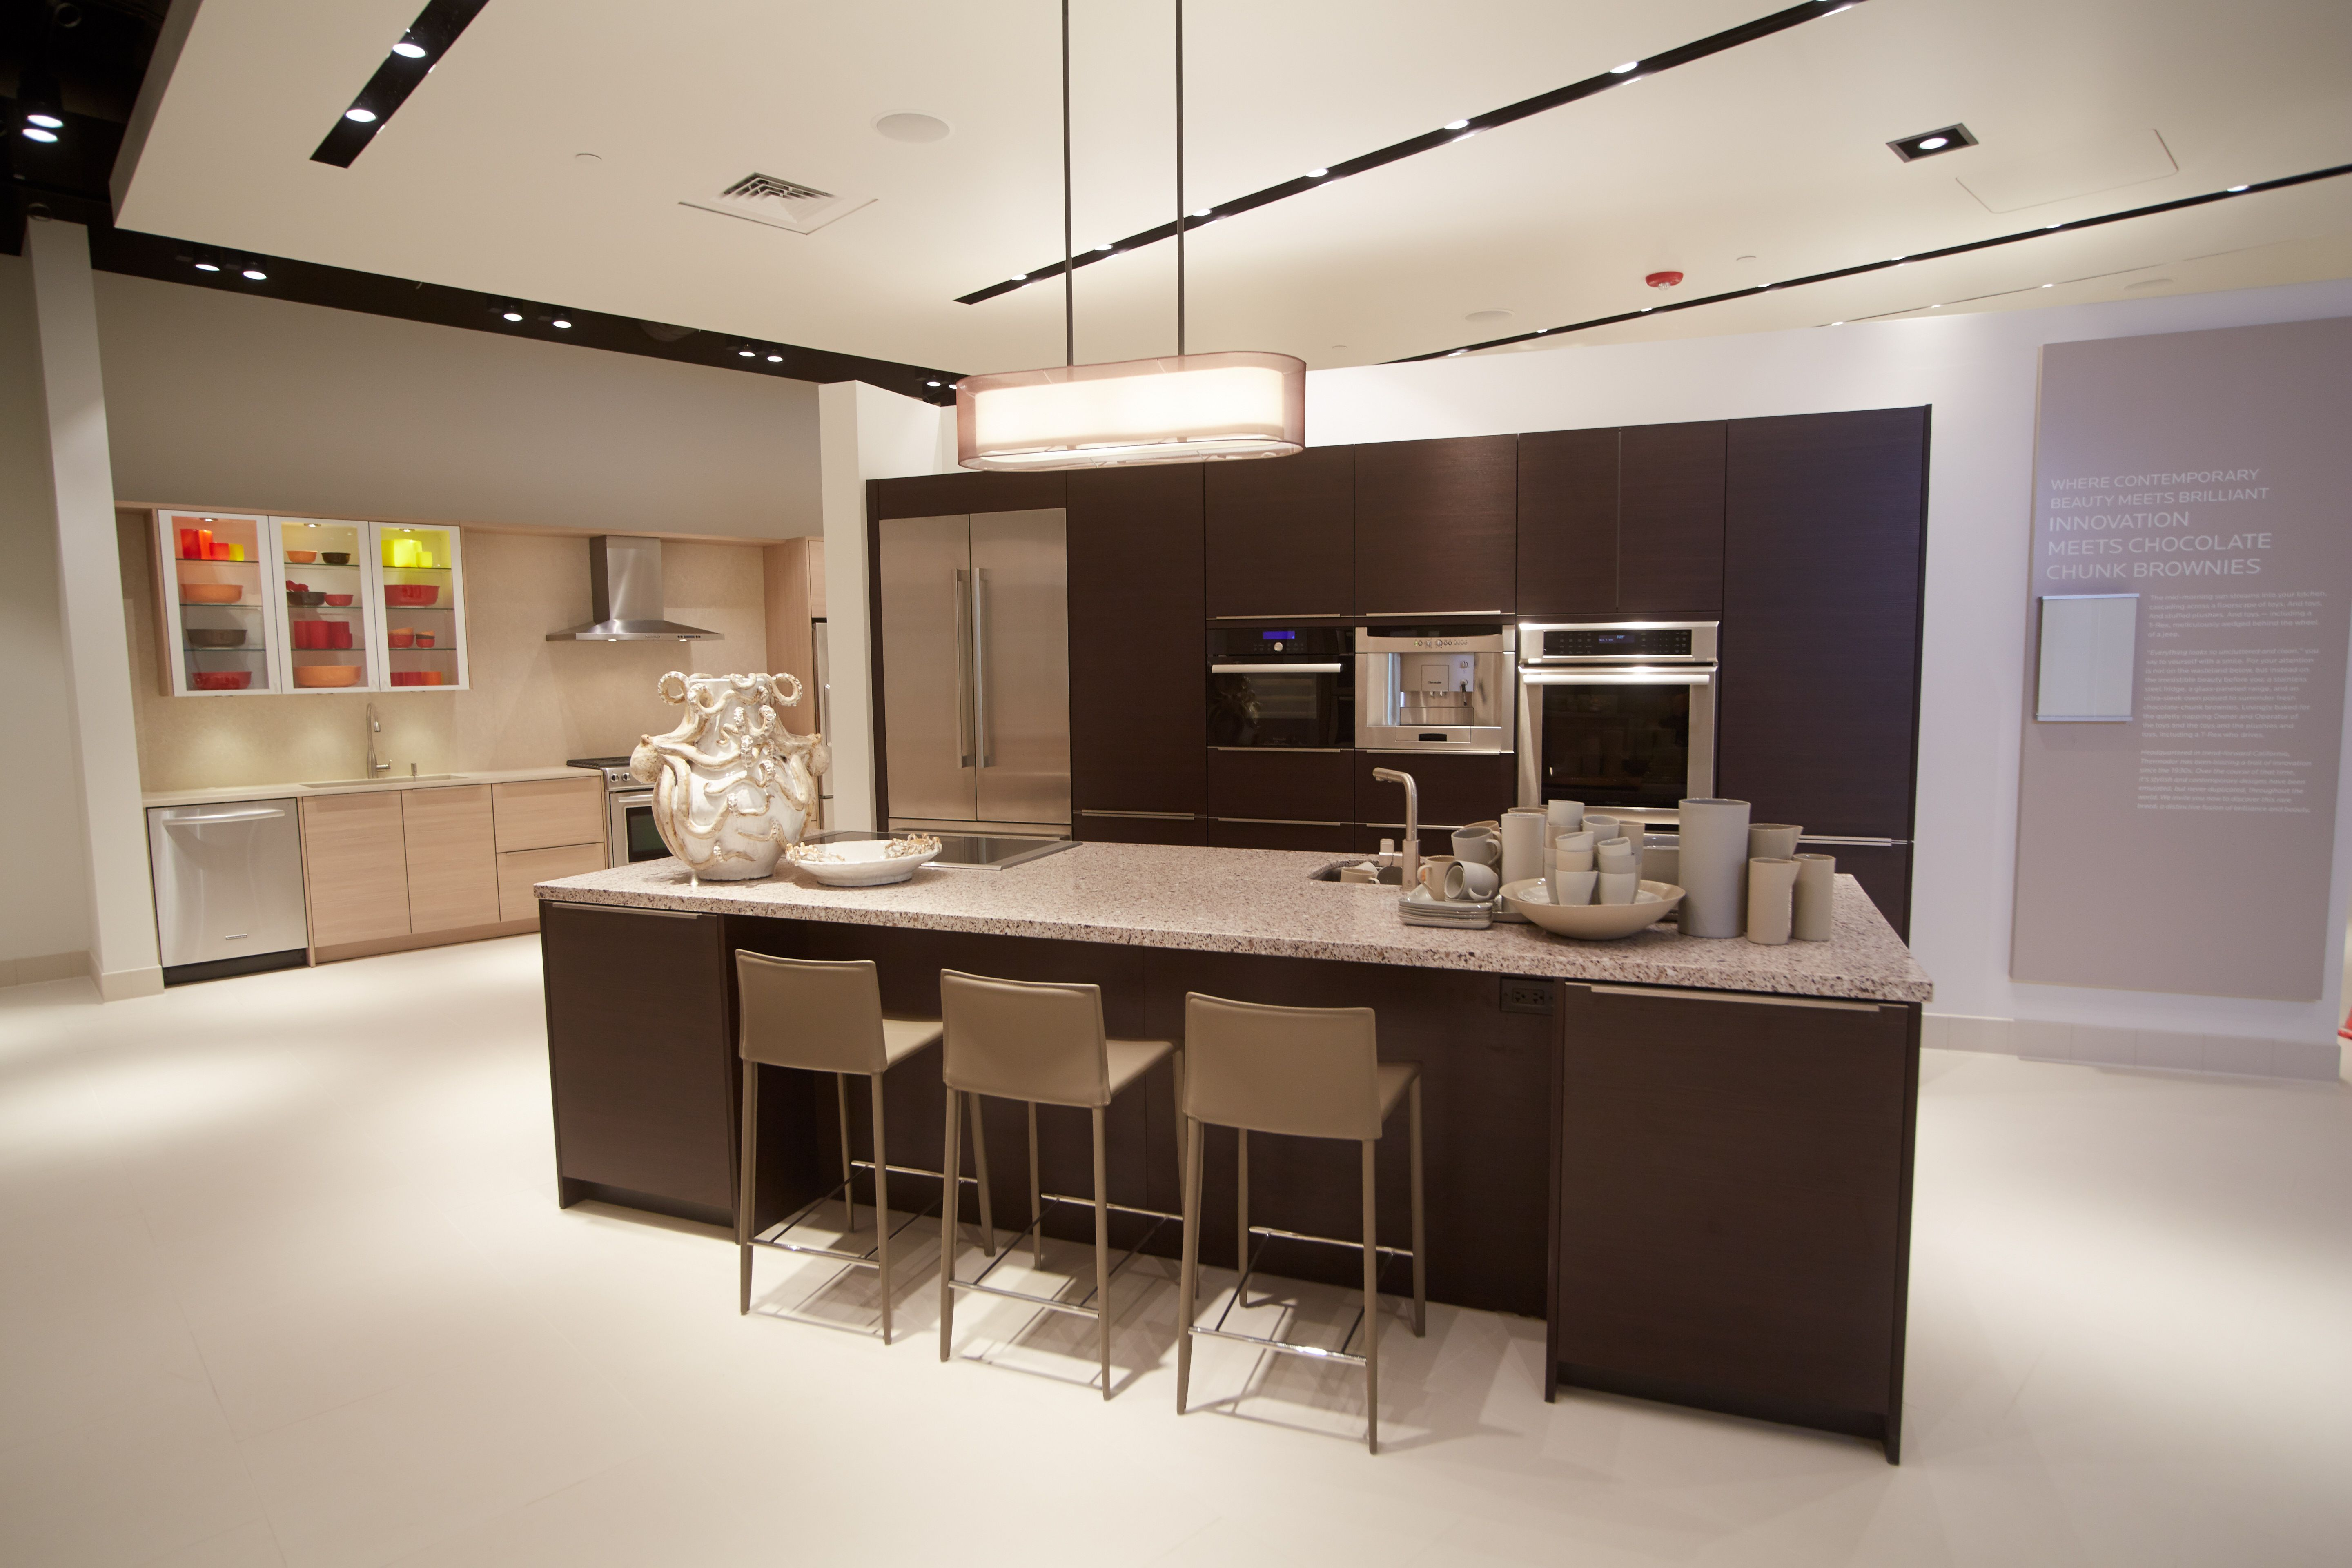 Kitchen Design Chicago Kitchen Design Pirch Chicago Pirch Chicago Pinterest